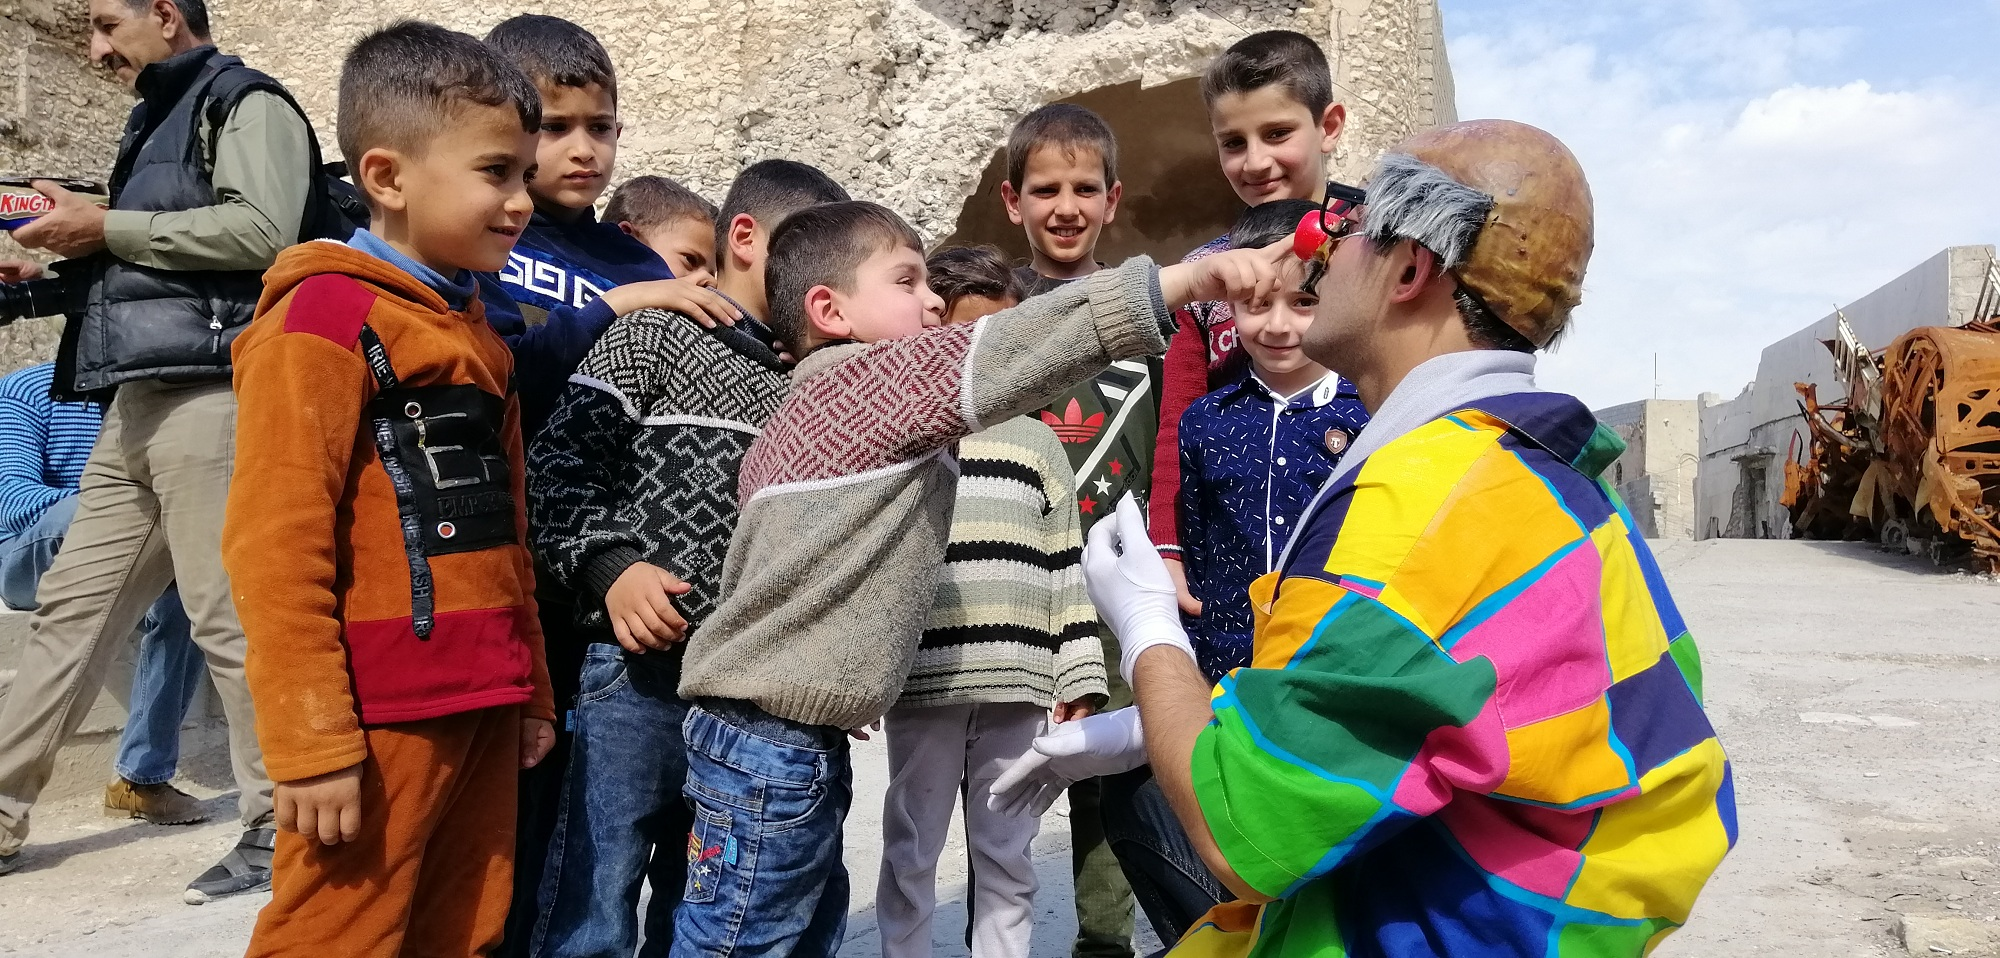 Photo of The sad Italian Clown came to entertain the children of Mosul but they Made him Cry